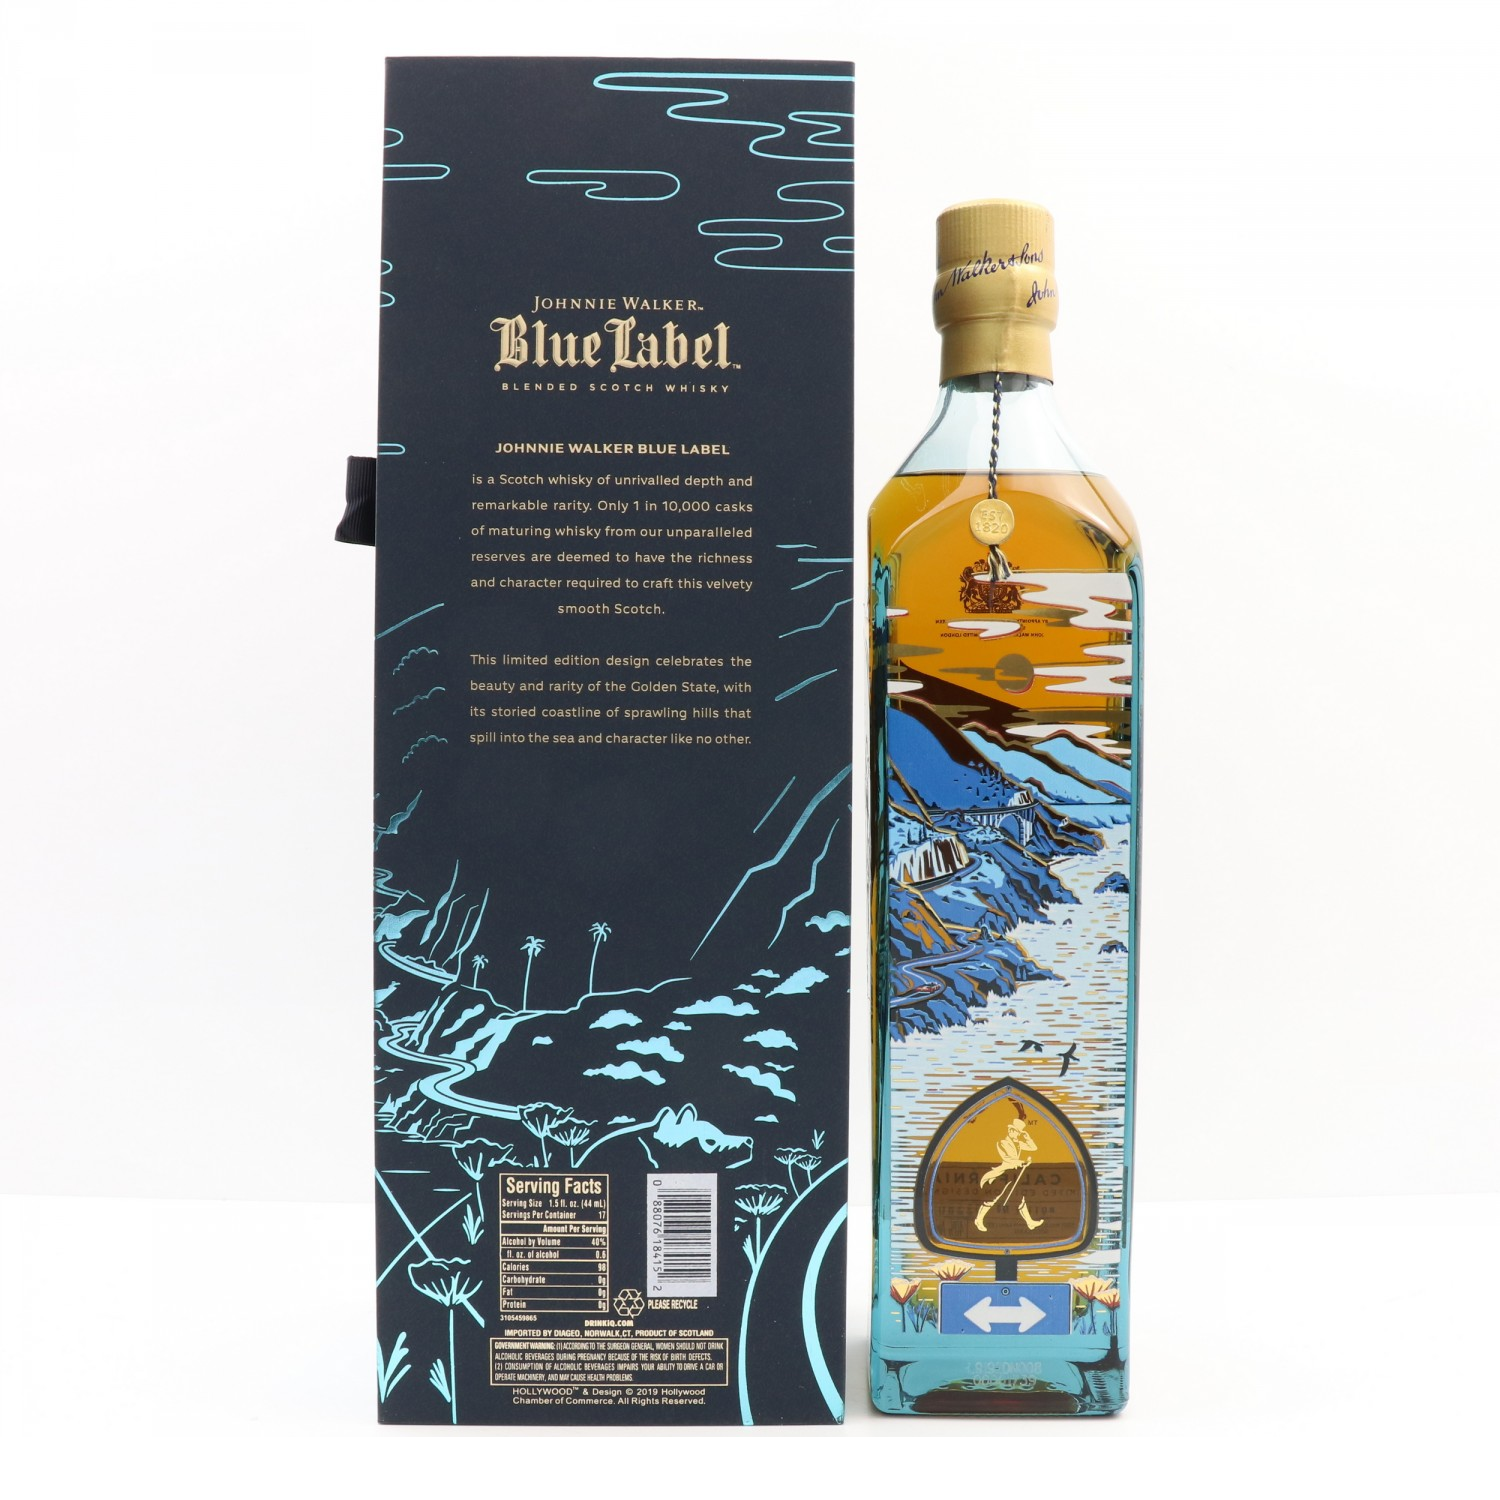 JOHNNIE WALKER BLUE LABEL CALIFORNIA EDITION 75CL